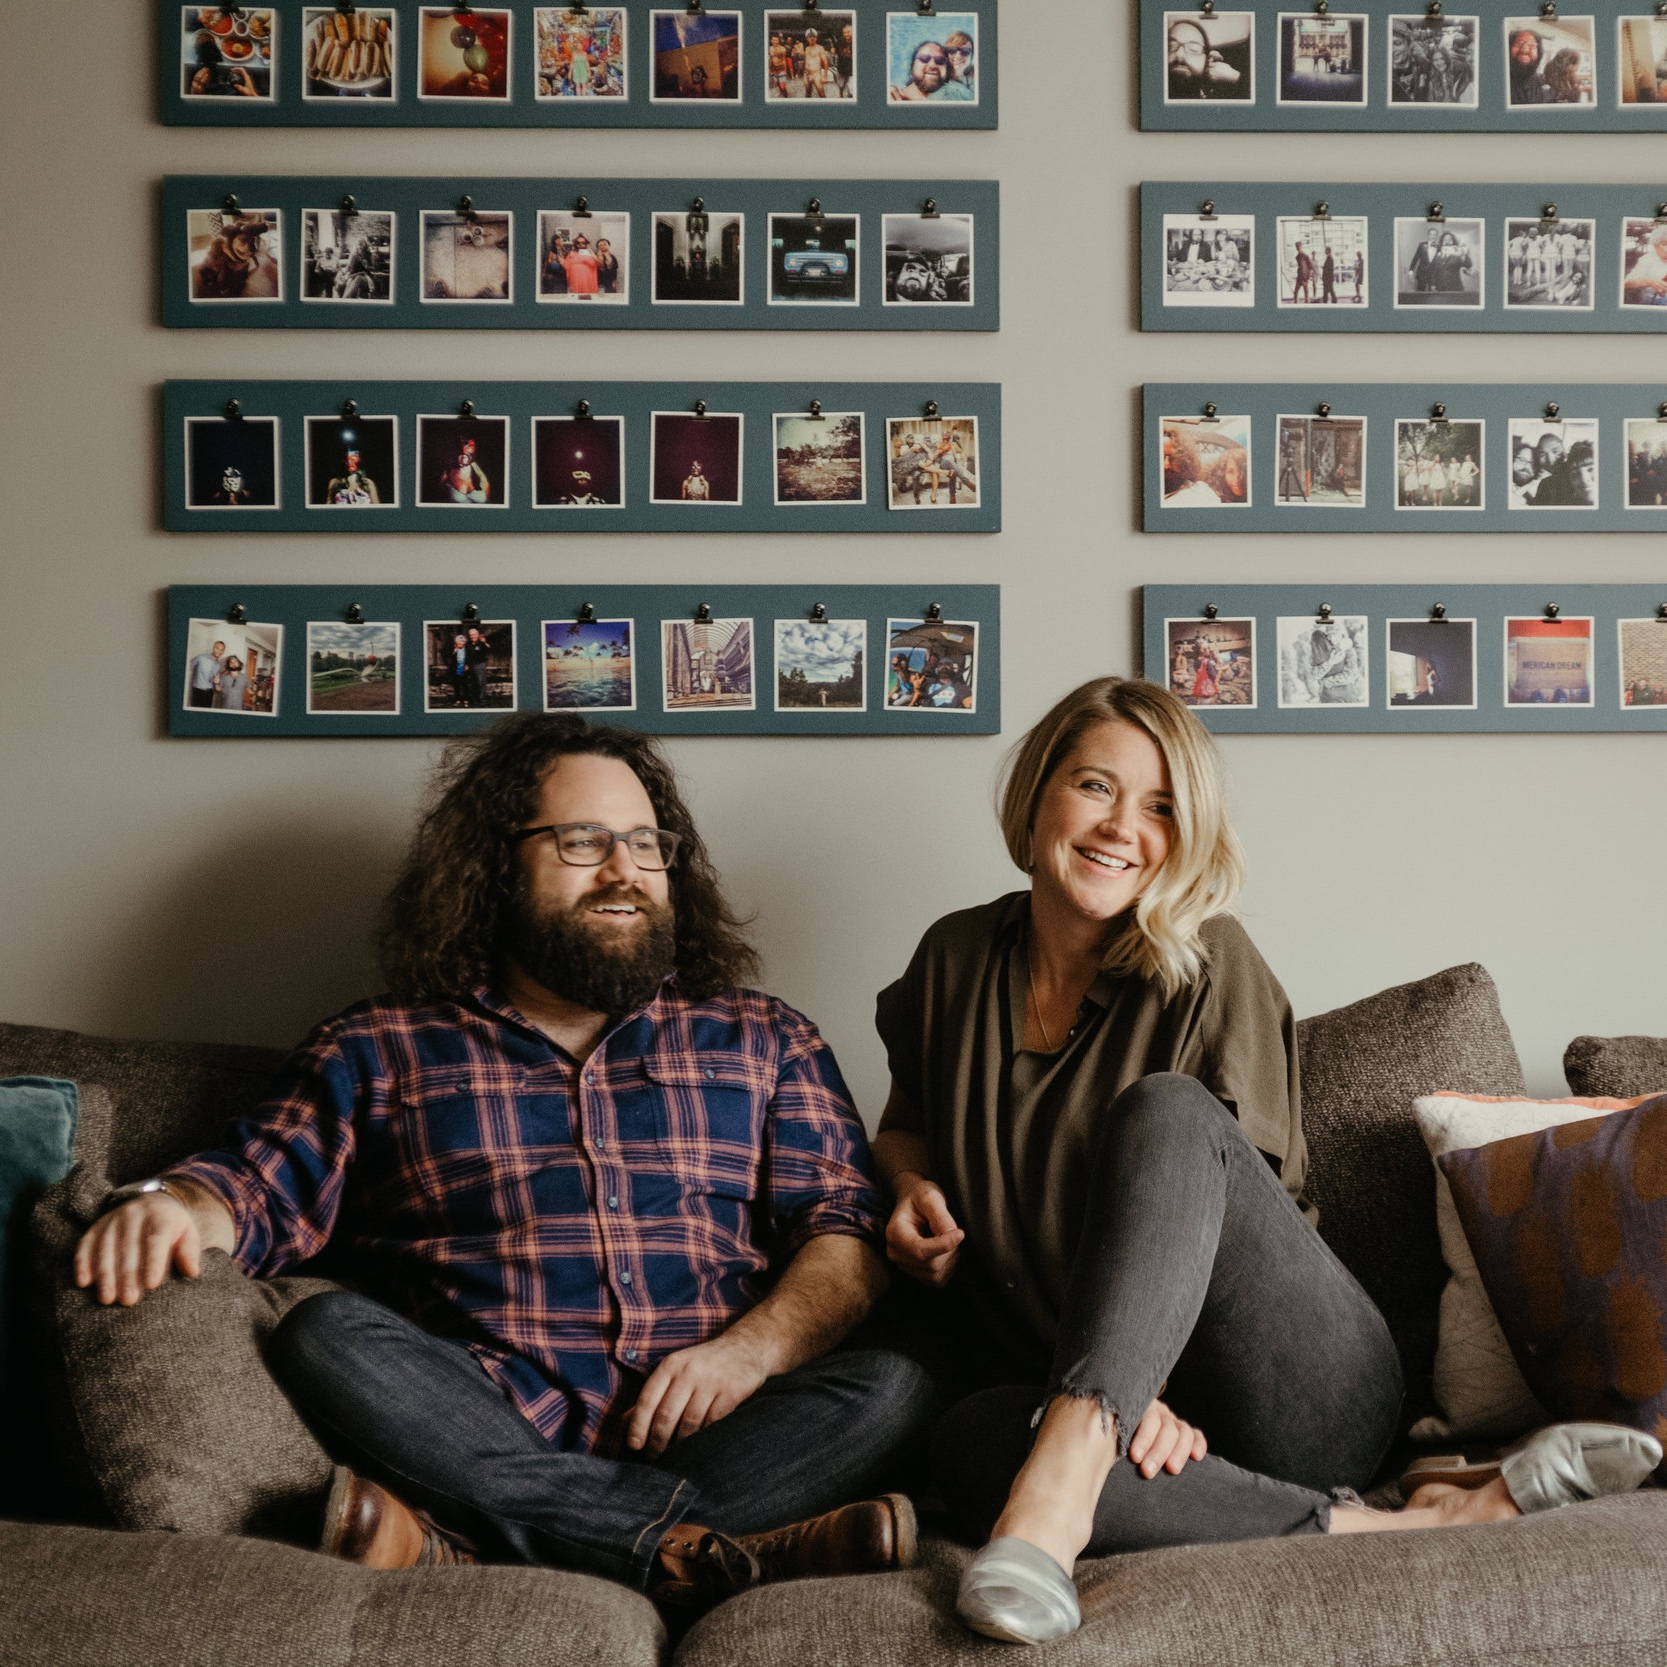 JESSICA EILEEN & BEN MAHONEY - 13 year creative veterans.Lucky to do what we love.We still try to outdo each-other on every shoot.No we aren't married or dating.Love beer and good natural light.